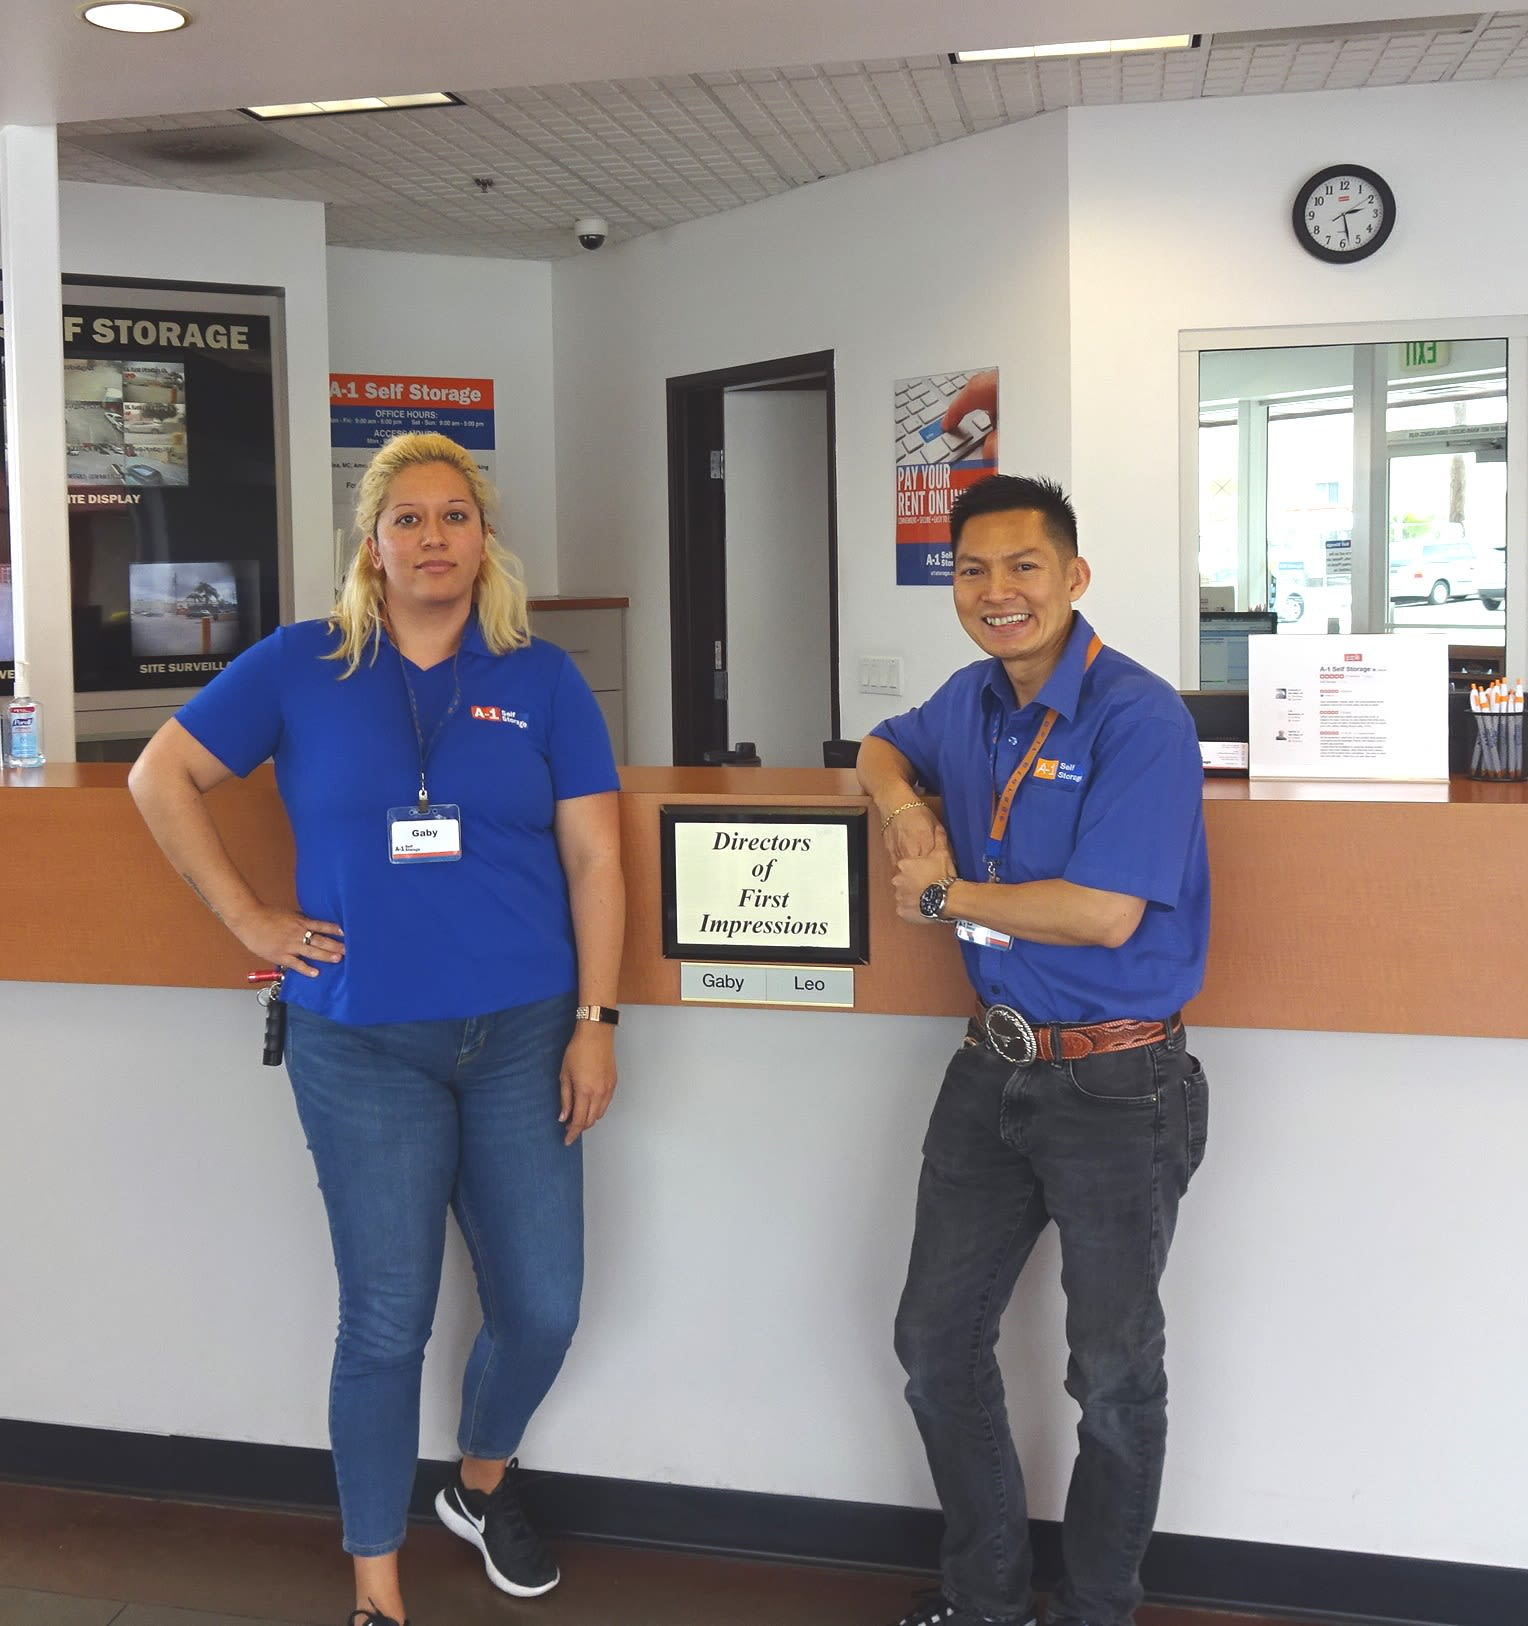 San Diego A-1 Self Storage team